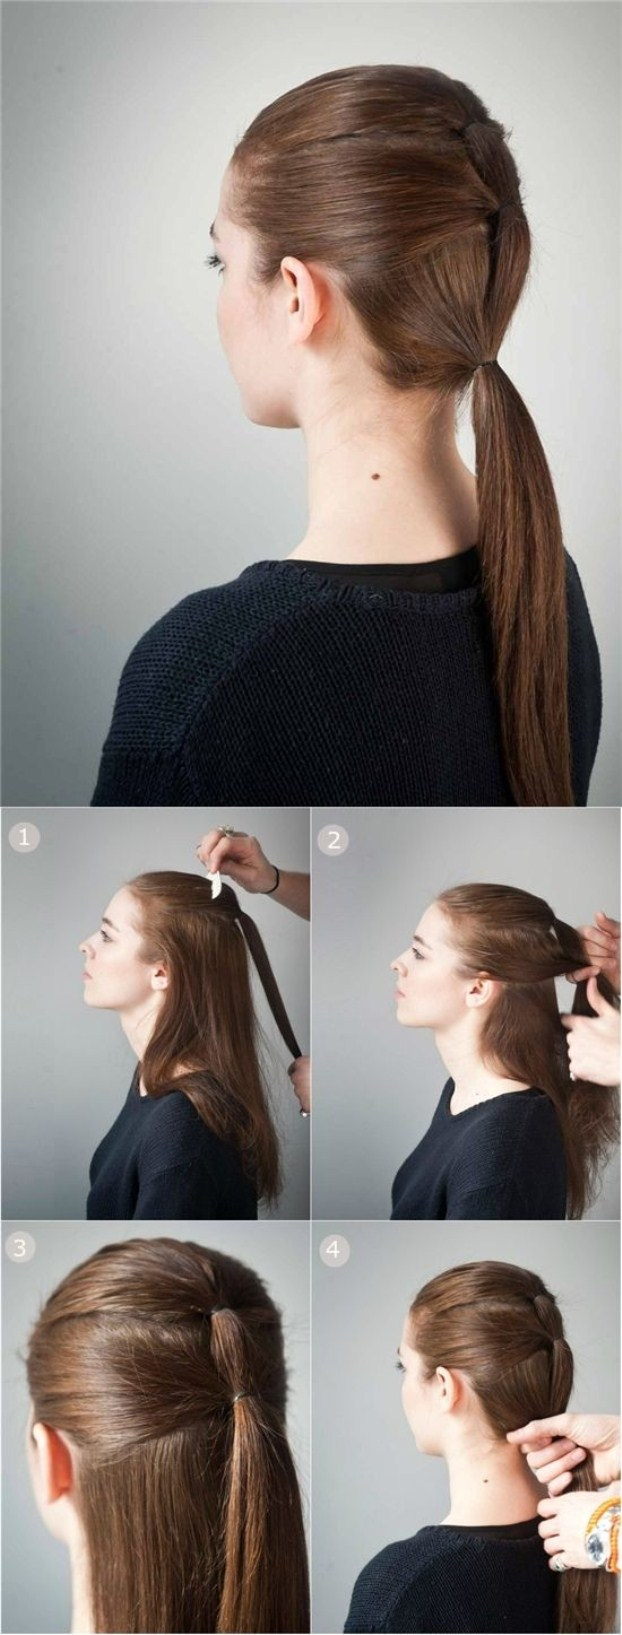 Triple-Ponytail-Hairstyle-for-School-Low-Ponytail-for-Straight-Long-Hair